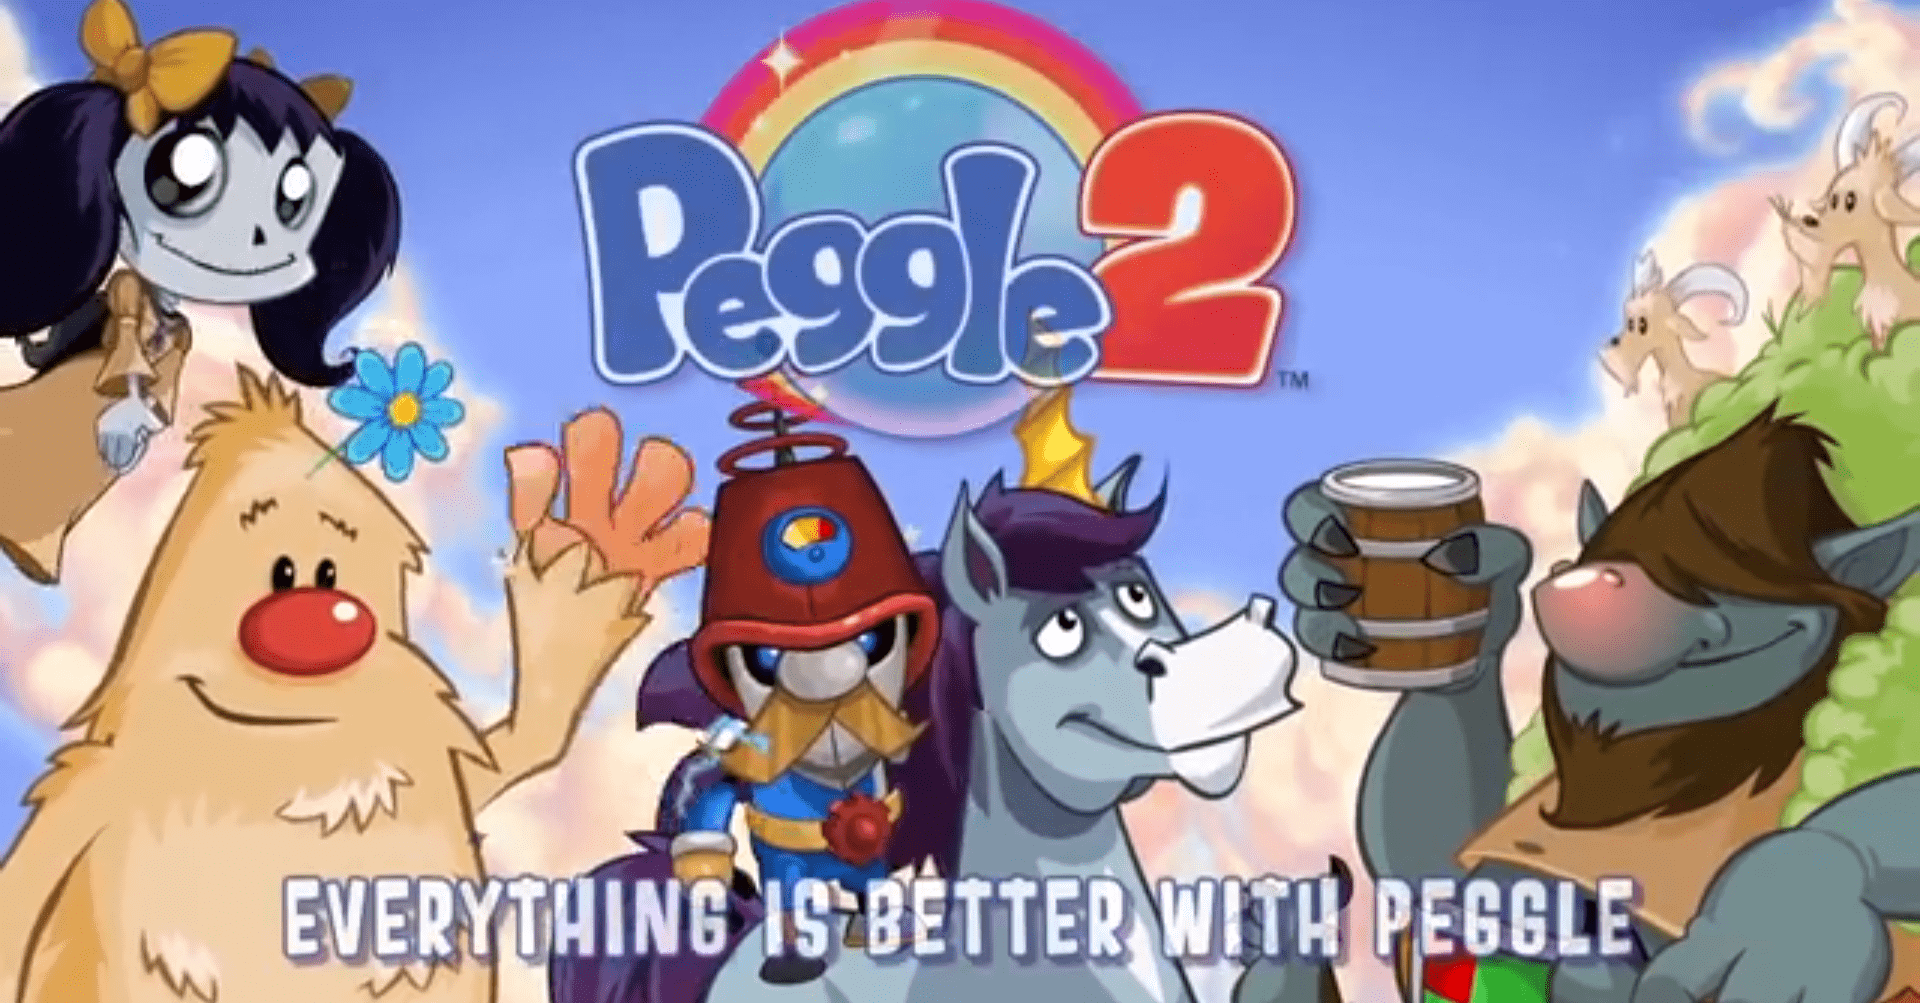 Peggle 2 widescreen wallpapers